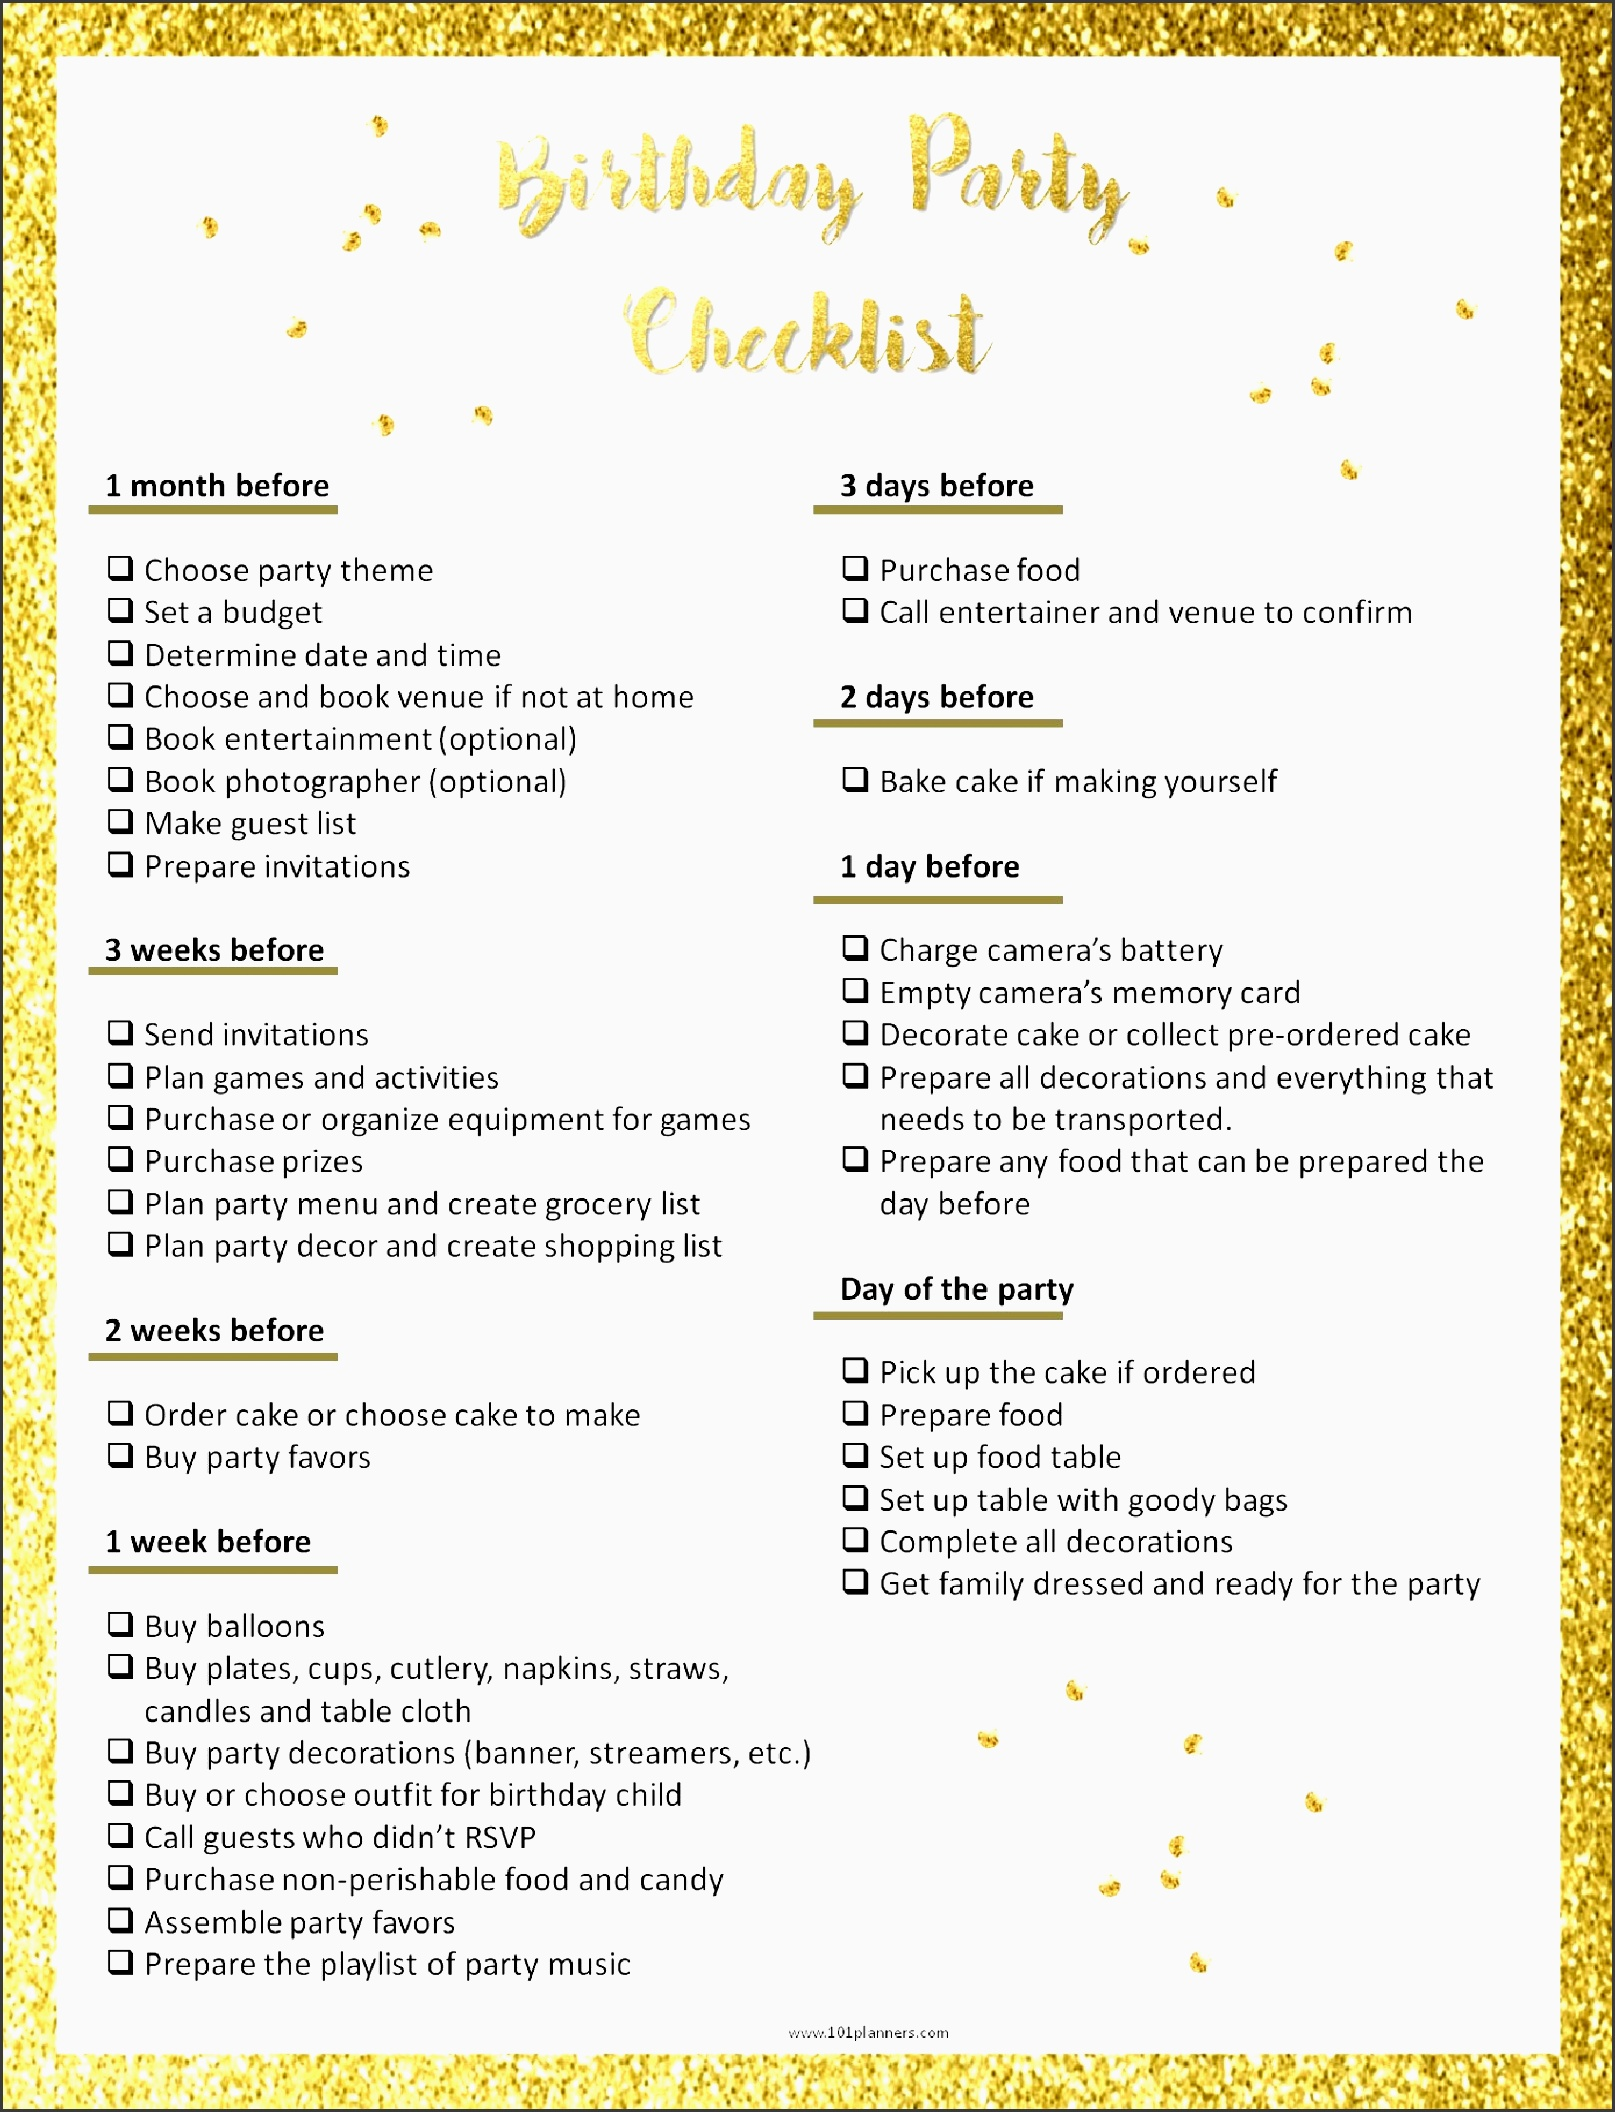 even though this is a kids birthday party checklist we are assuming that an adult is doing the planning so this checklist was designed for you and not for